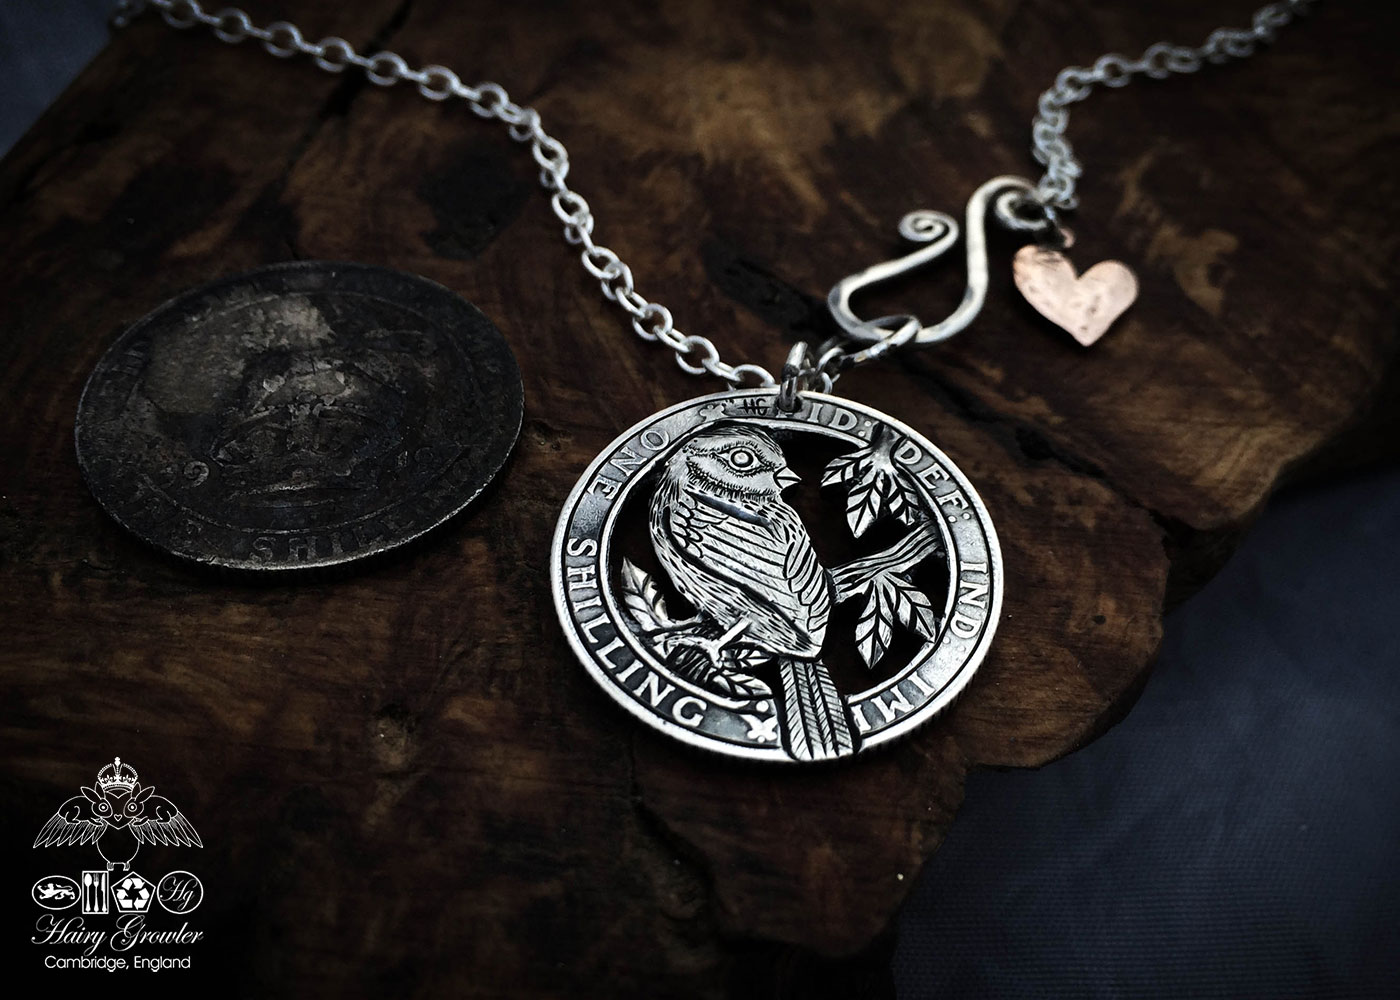 Handcrafted and repurposed silver shilling The Silver Shilling collection. silver blue-tit necklace totally handcrafted and recycled from old sterling silver shilling coins. Designed and created by Hairy Growler Jewellery, Cambridge, UK. necklace